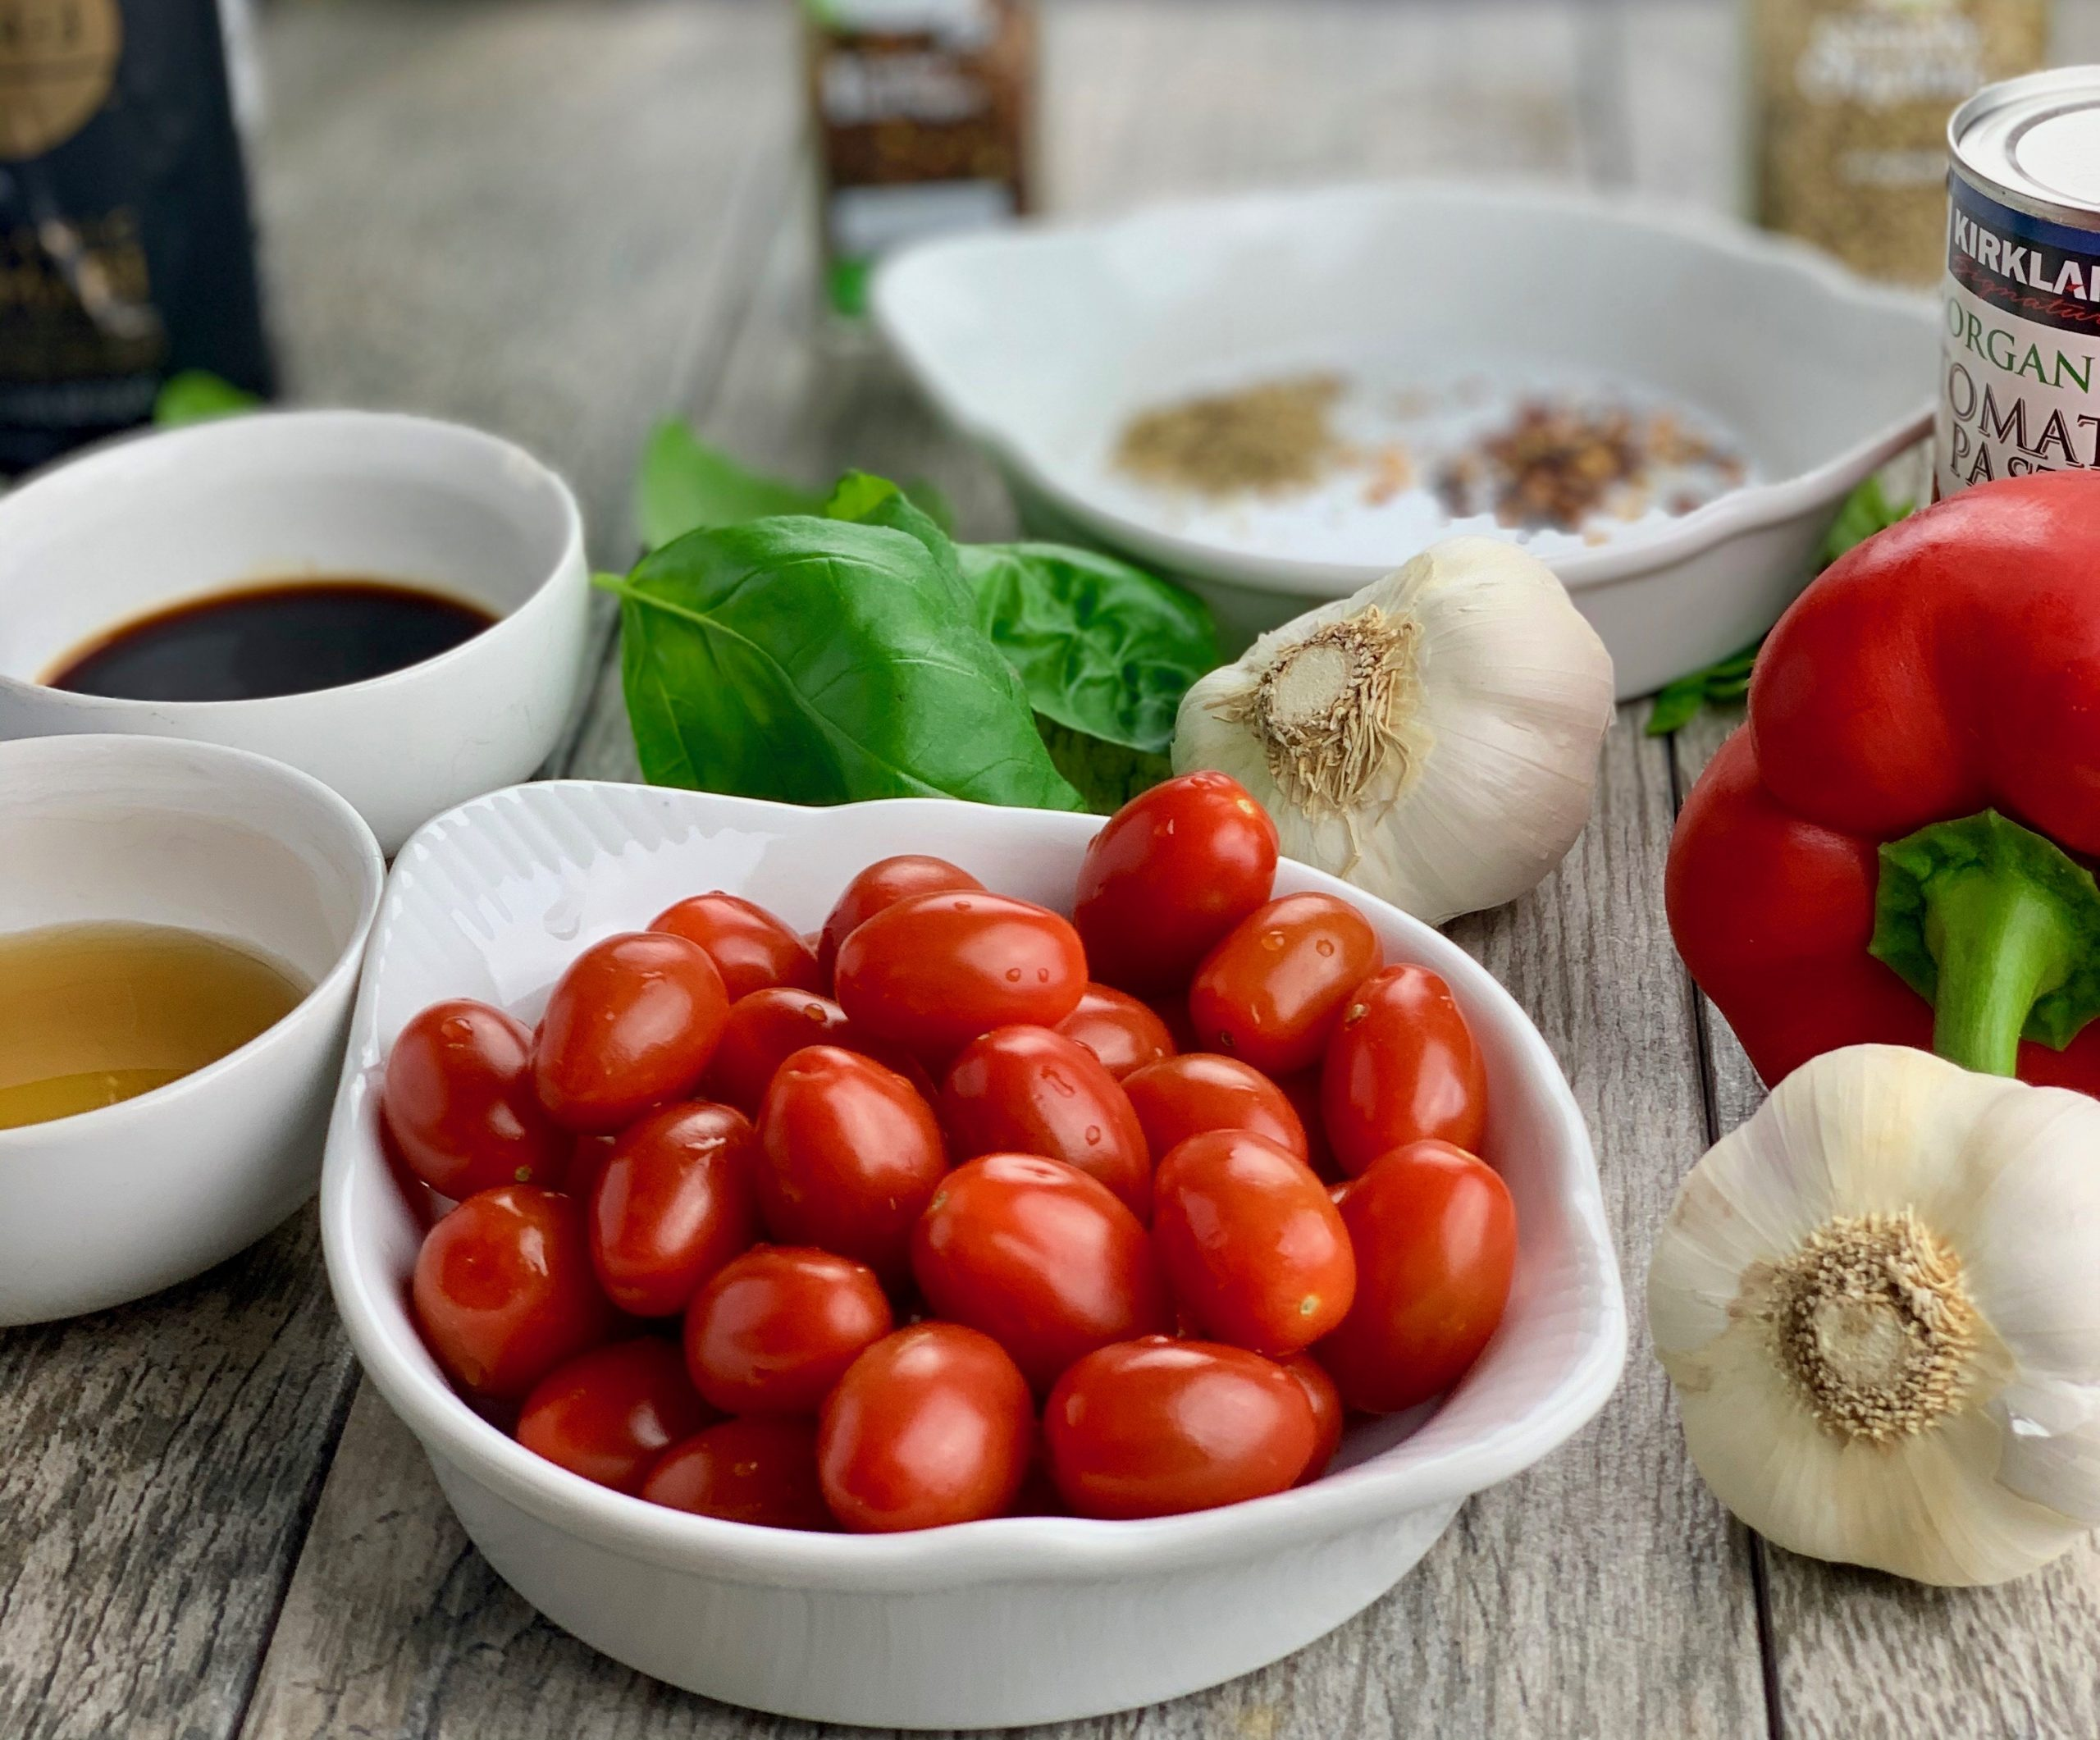 Ingredients for Quick Tomato Basil Sauce